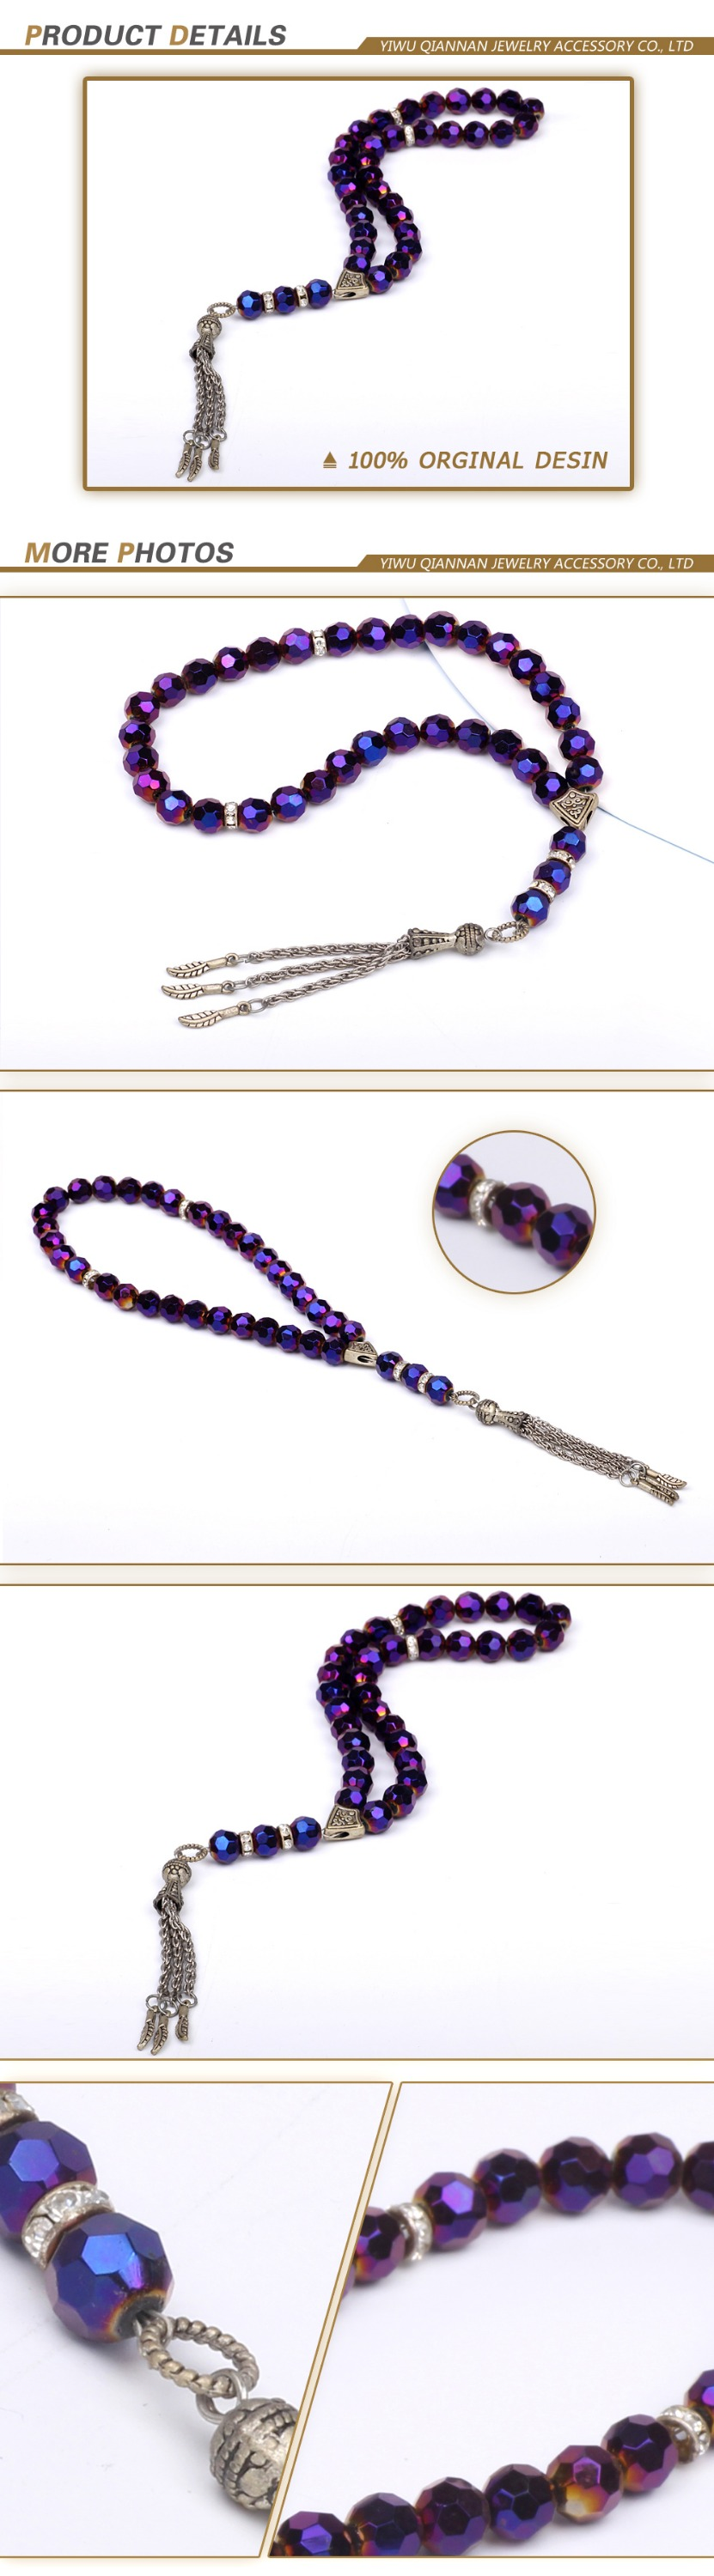 China Fashion sibha Islamic Prayer Beads wholesale Islam Tasbeeh Beads